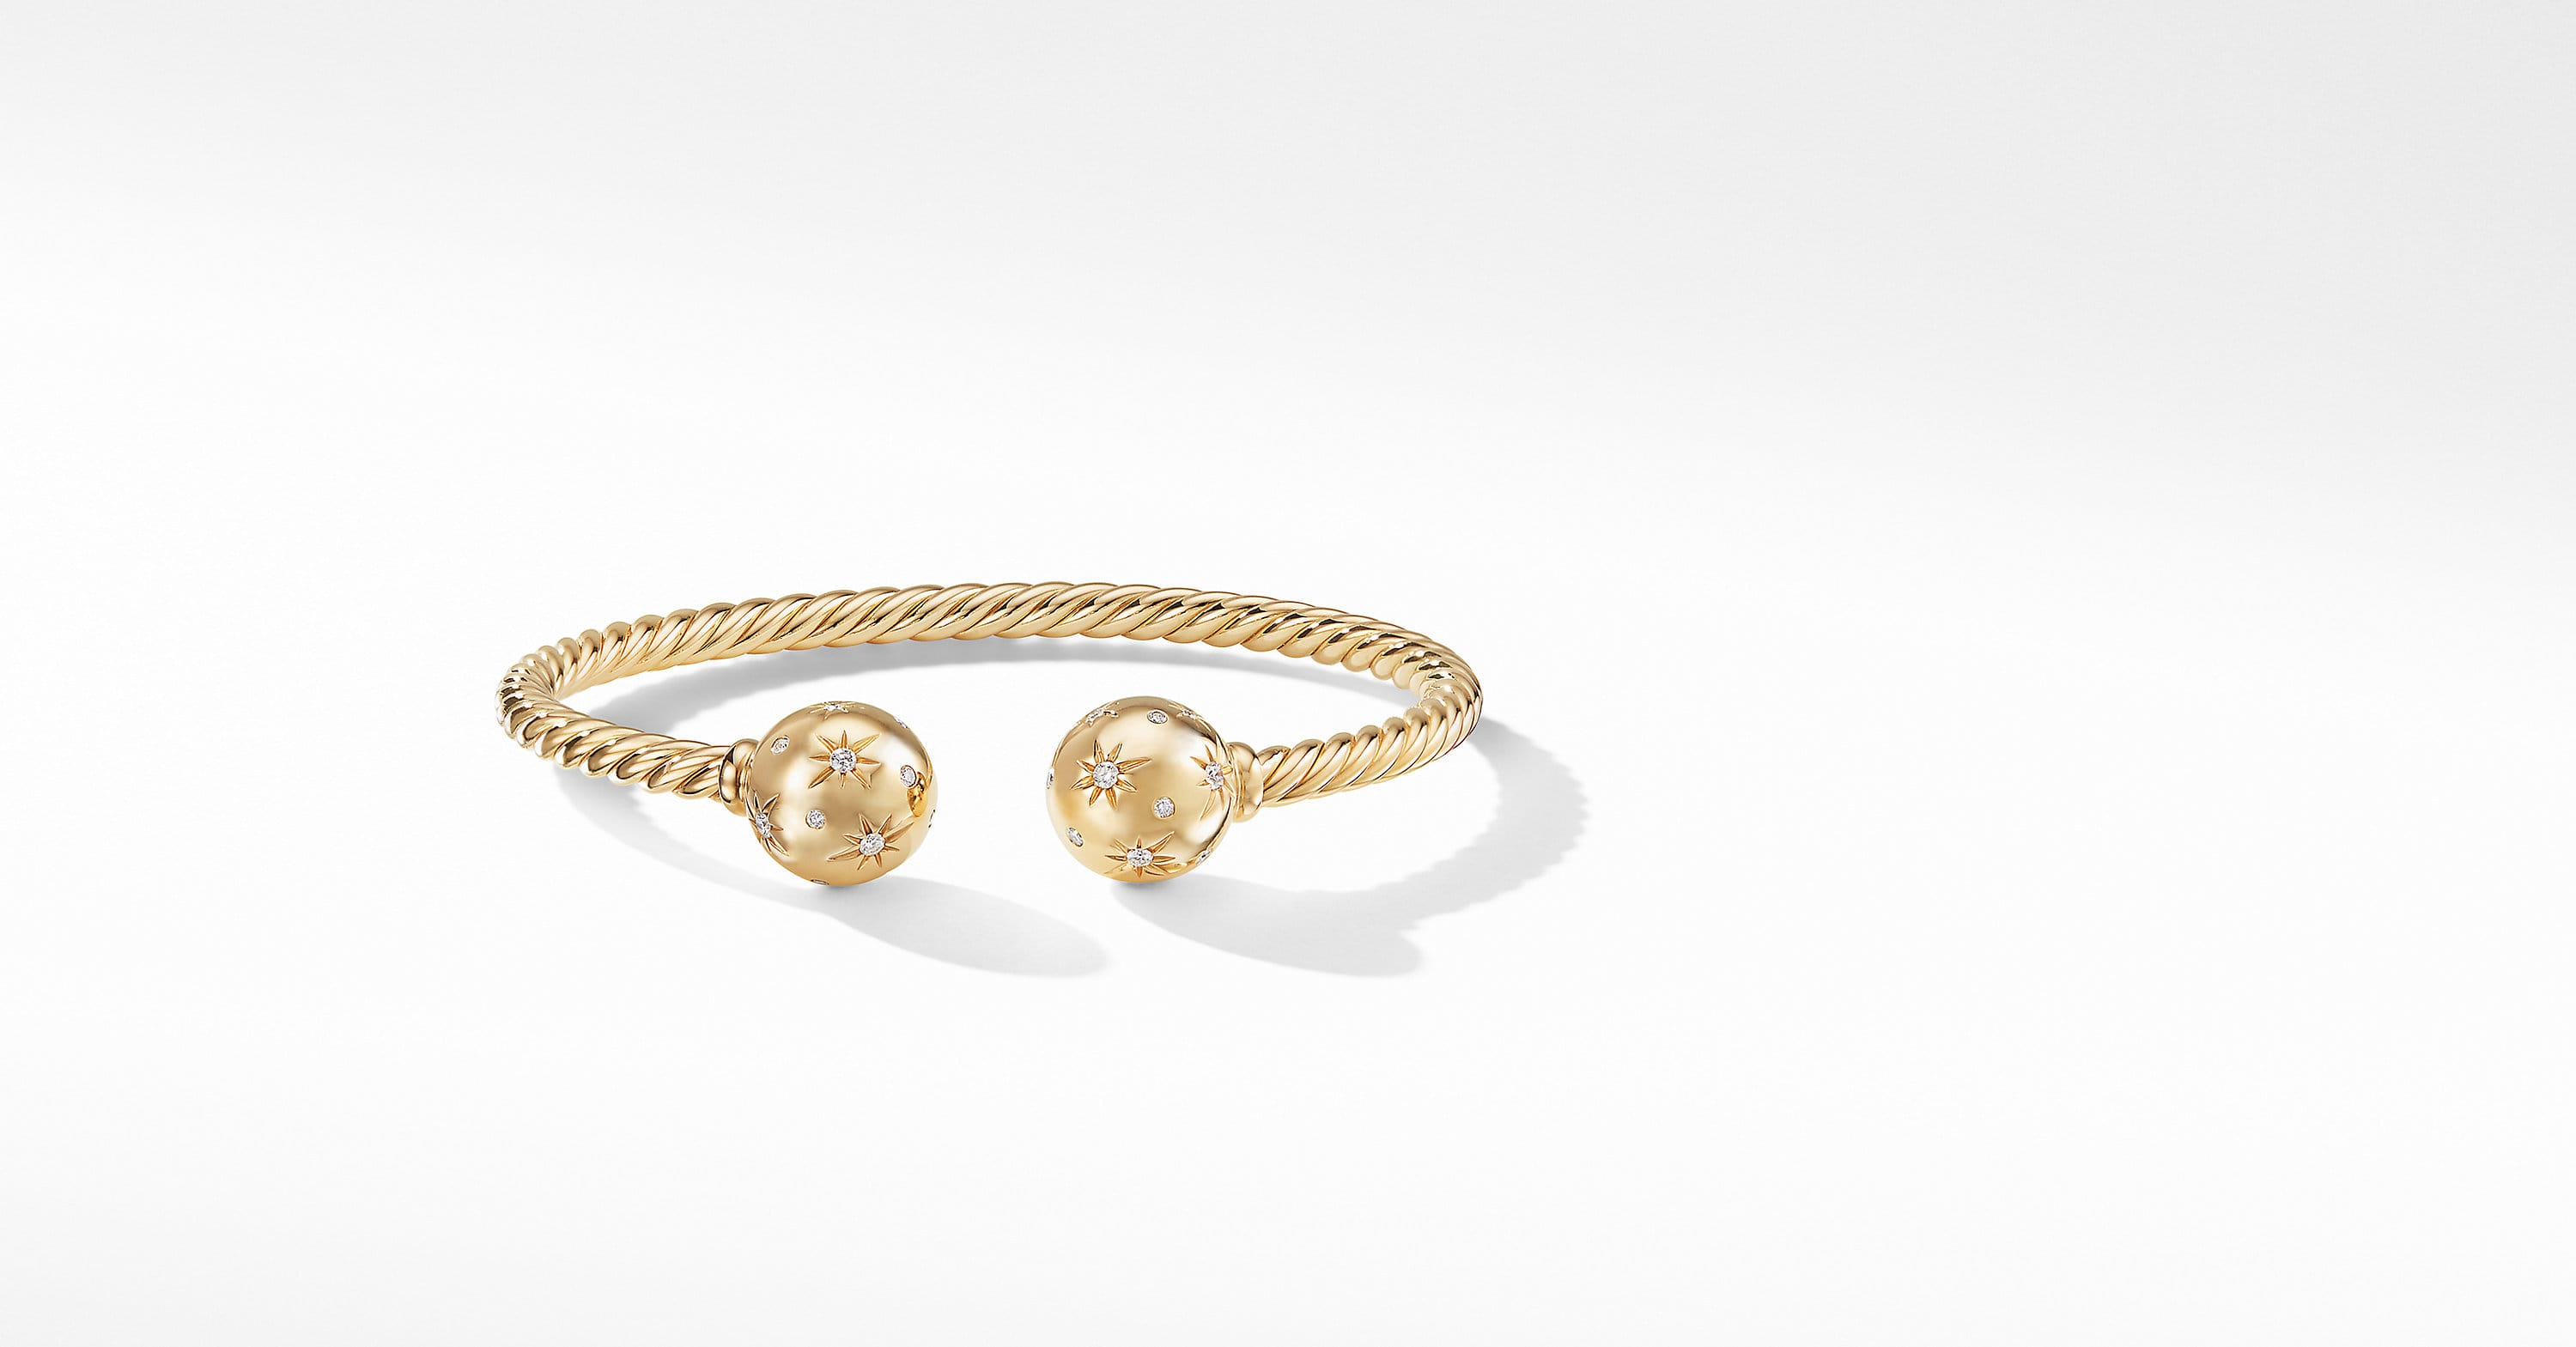 Solari Bead Bracelet with Diamonds in 18K Gold, 12mm